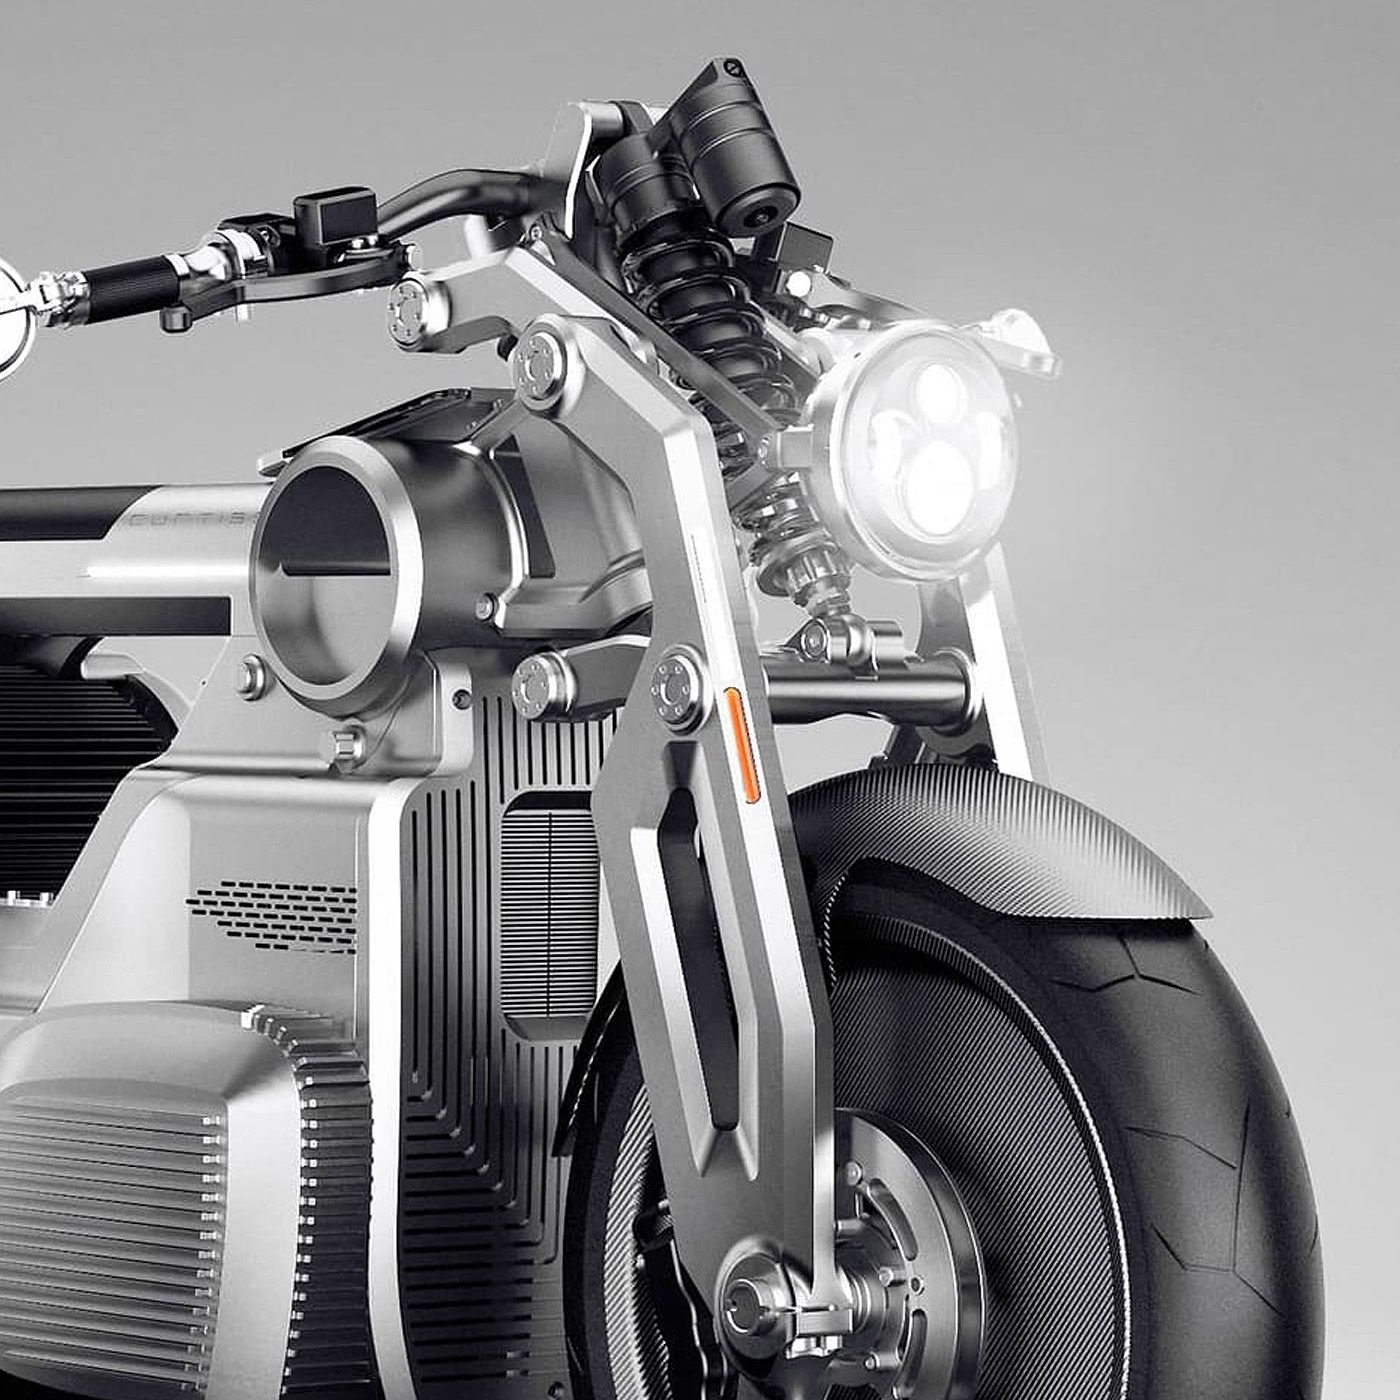 Zeus The All Electric Hot Rod By Curtiss Motorcycles